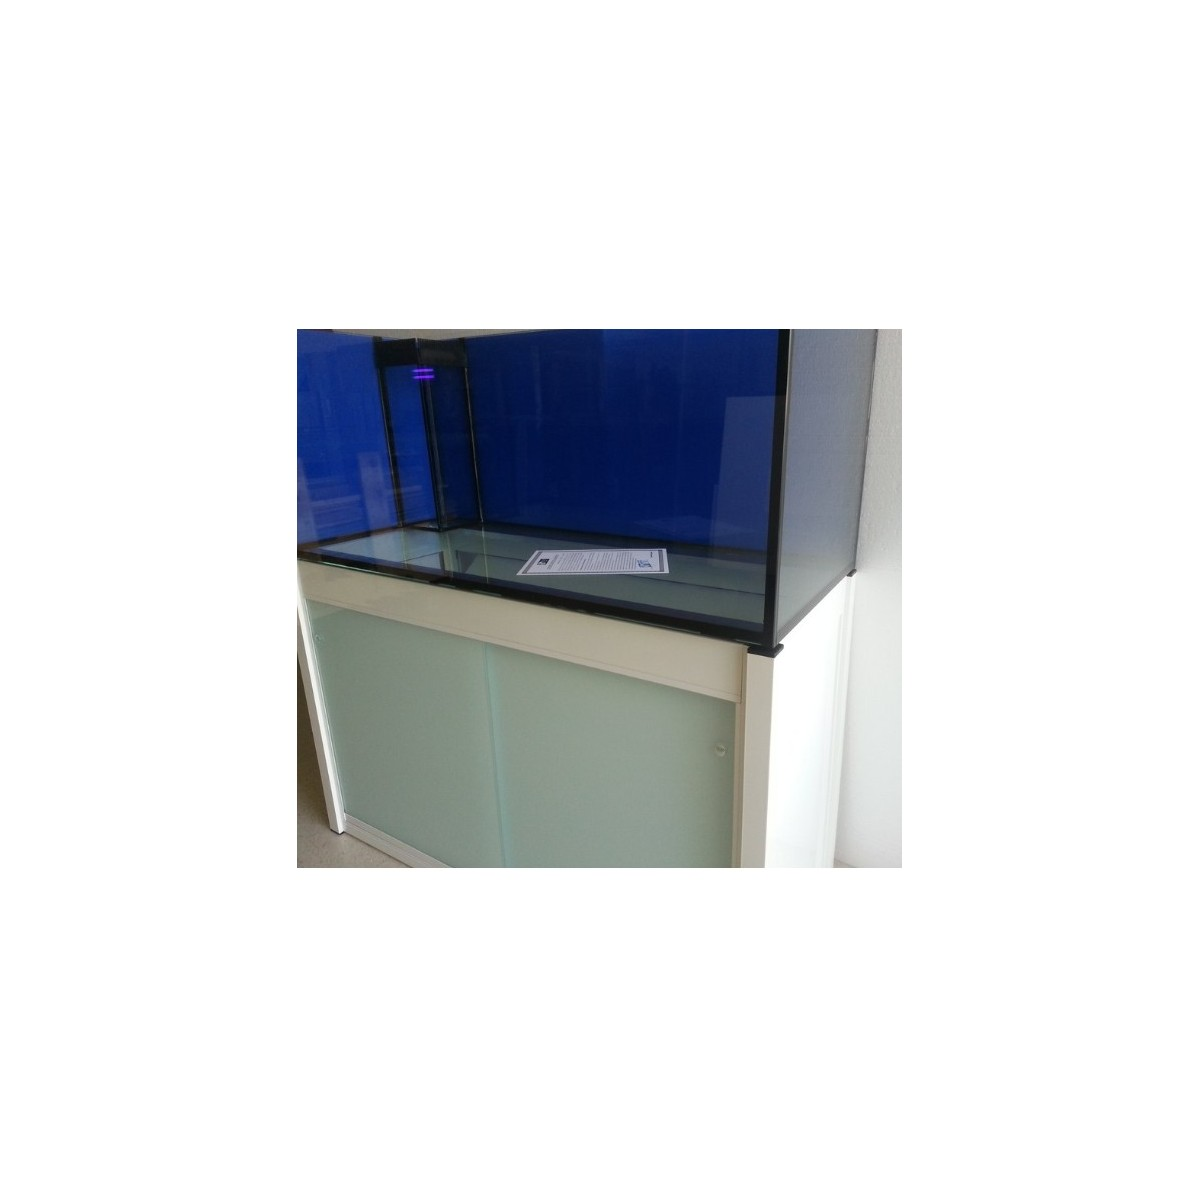 Mueble a medida luxury para acuario furious fish barcelona for Mueble 80x40